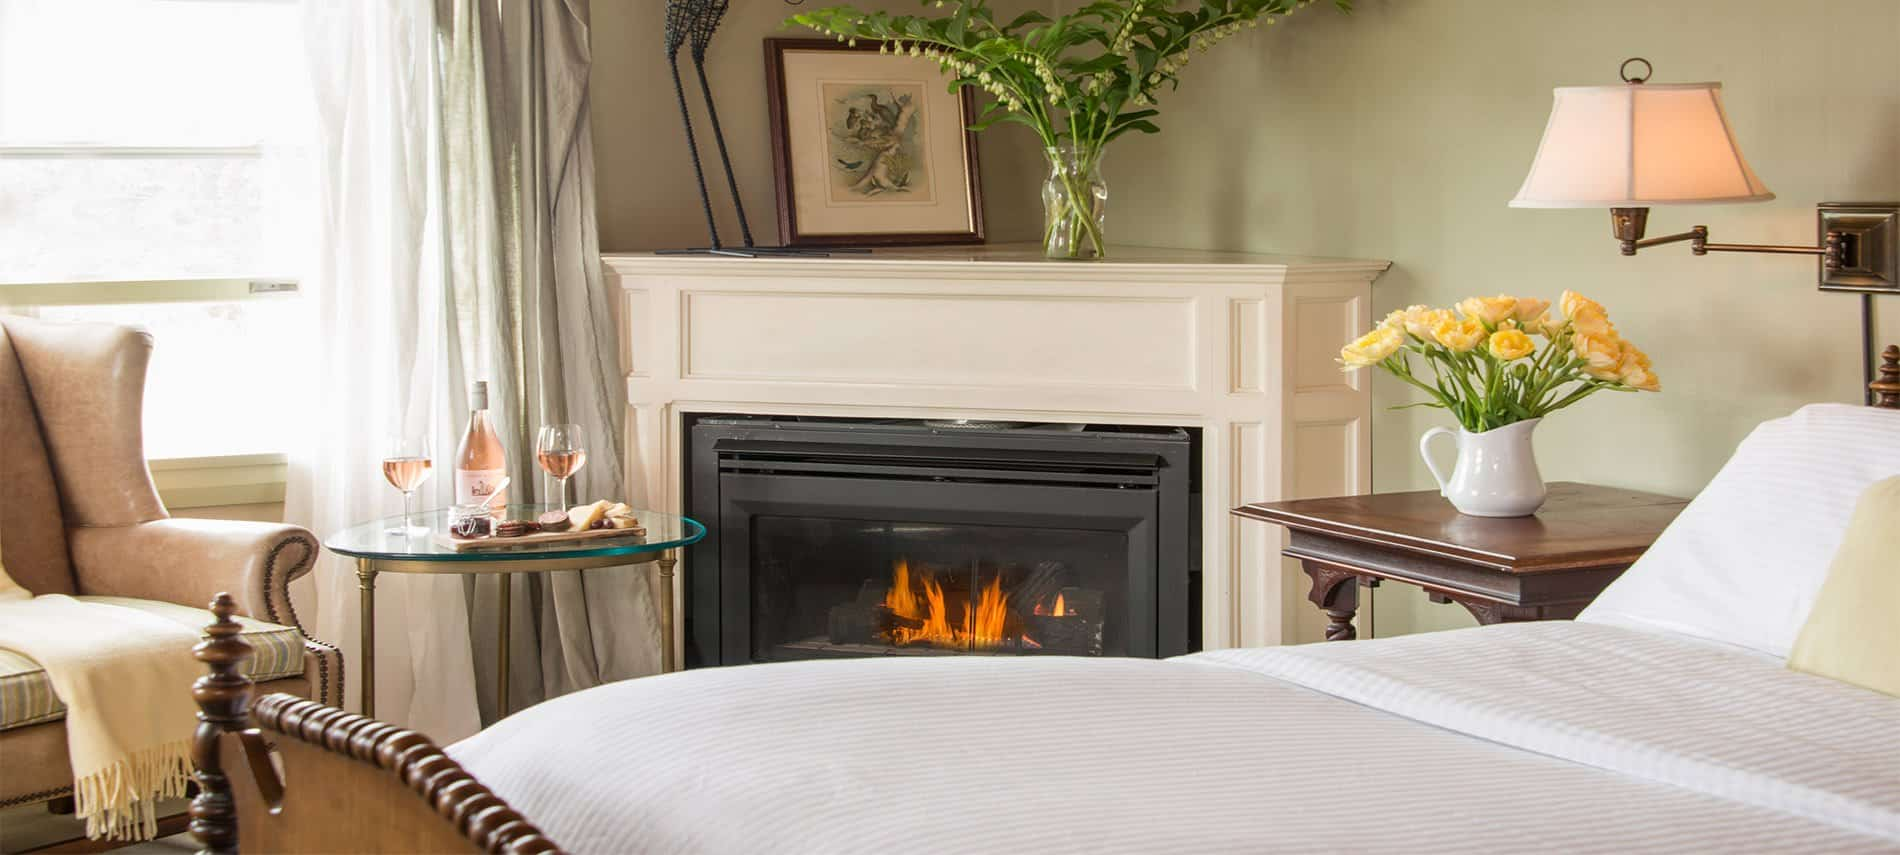 Antique bed with white duvet, tan wingback chair, and roaring fireplace.